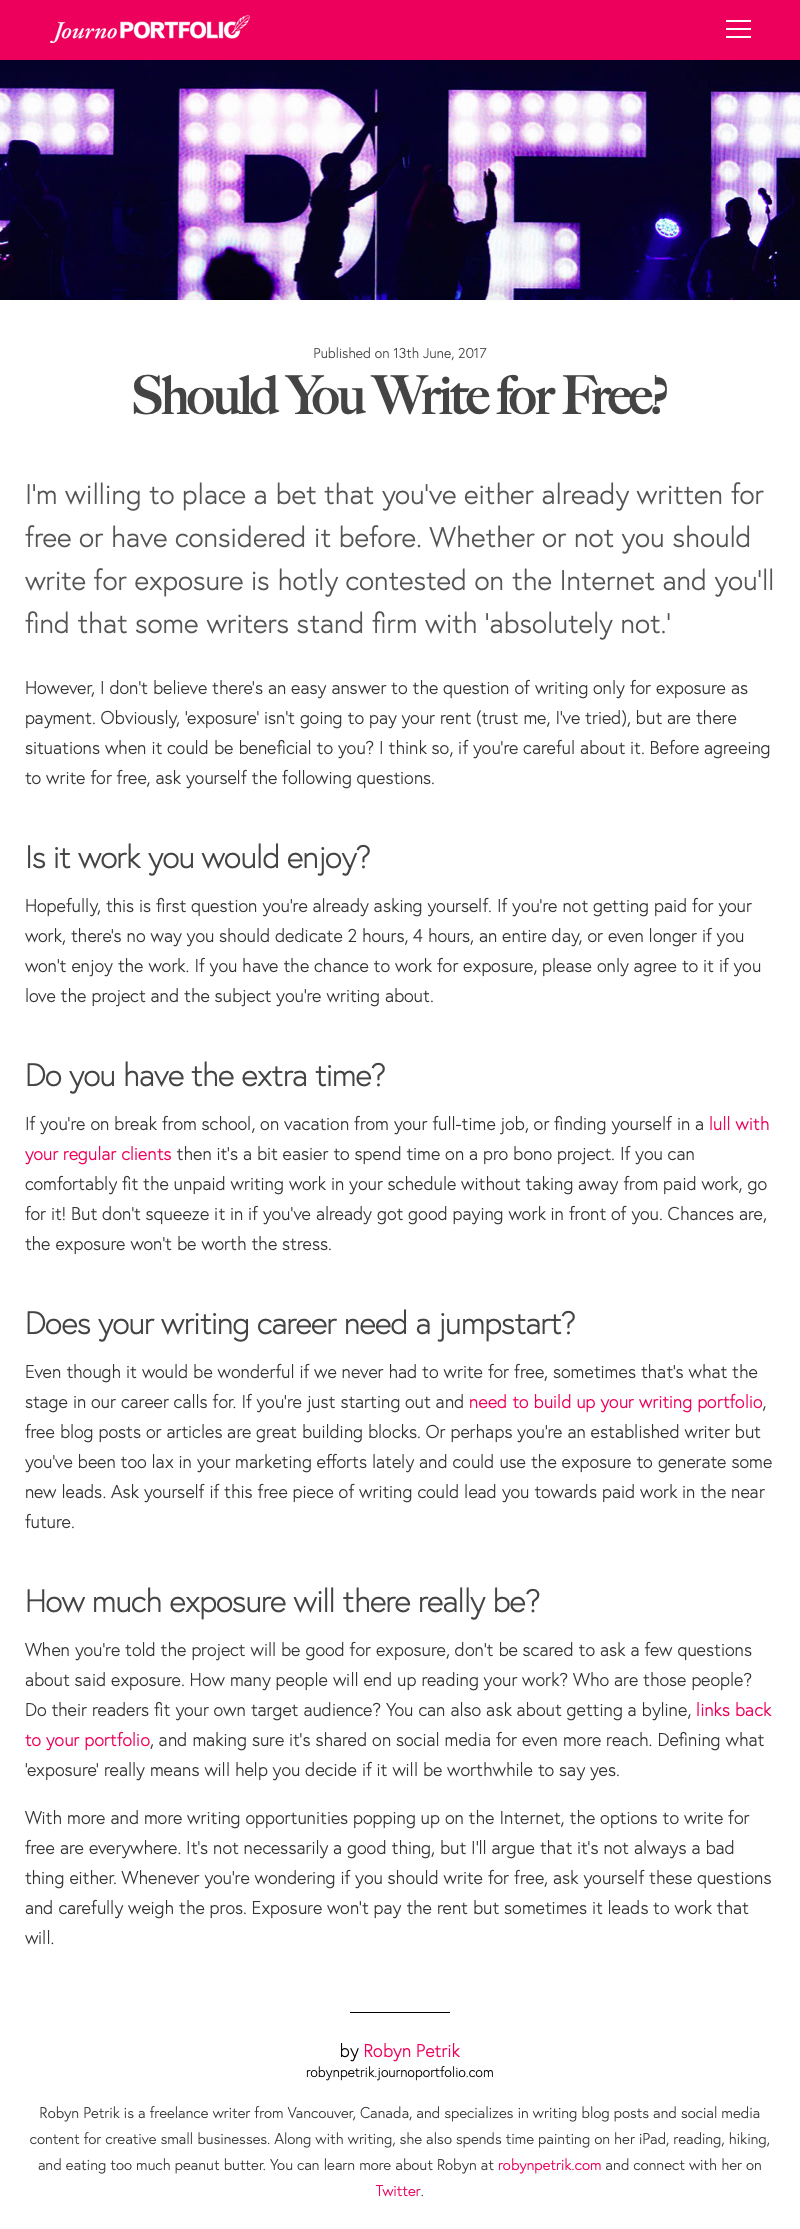 Should You Write for Free?